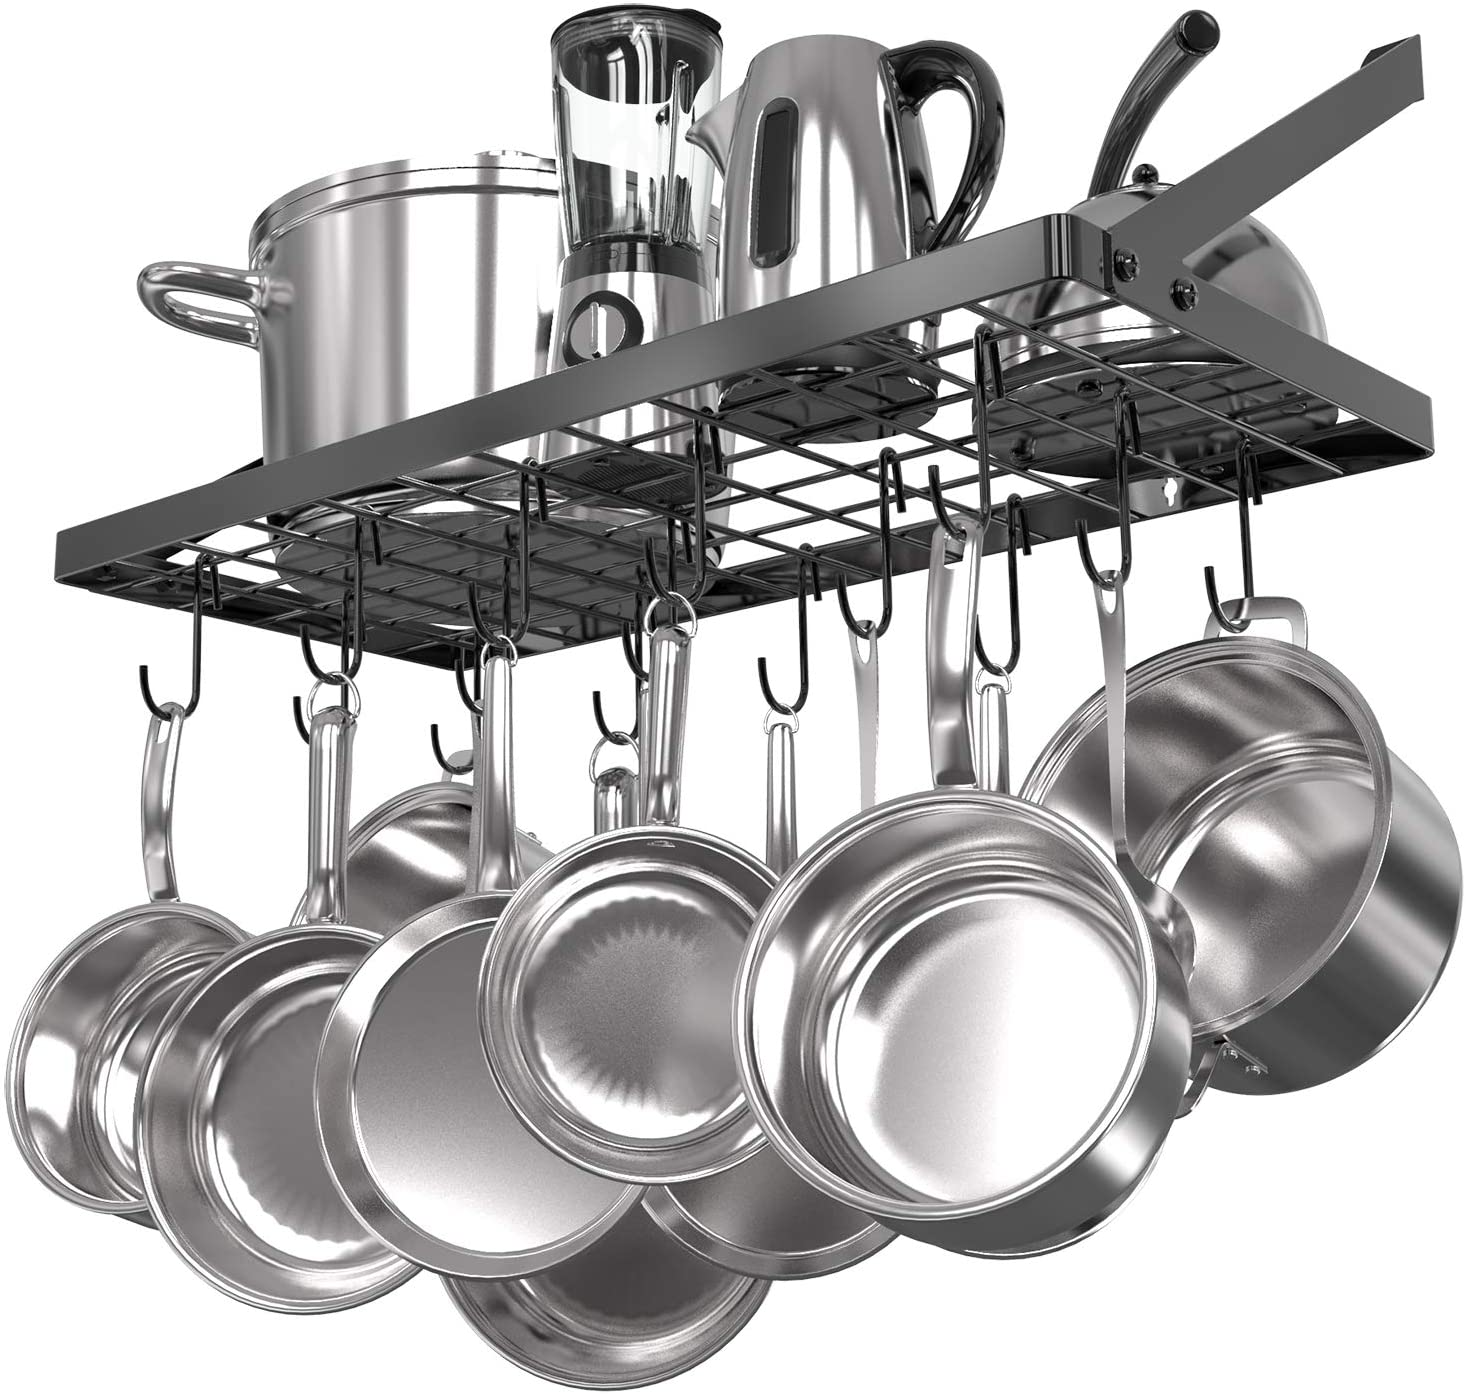 Amazon Com Vdomus Square Grid Wall Mount Pot Rack Kitchen Cookware Hanging Organizer With 15 Hooks 29 3 By13 Inch Black Home Improvement